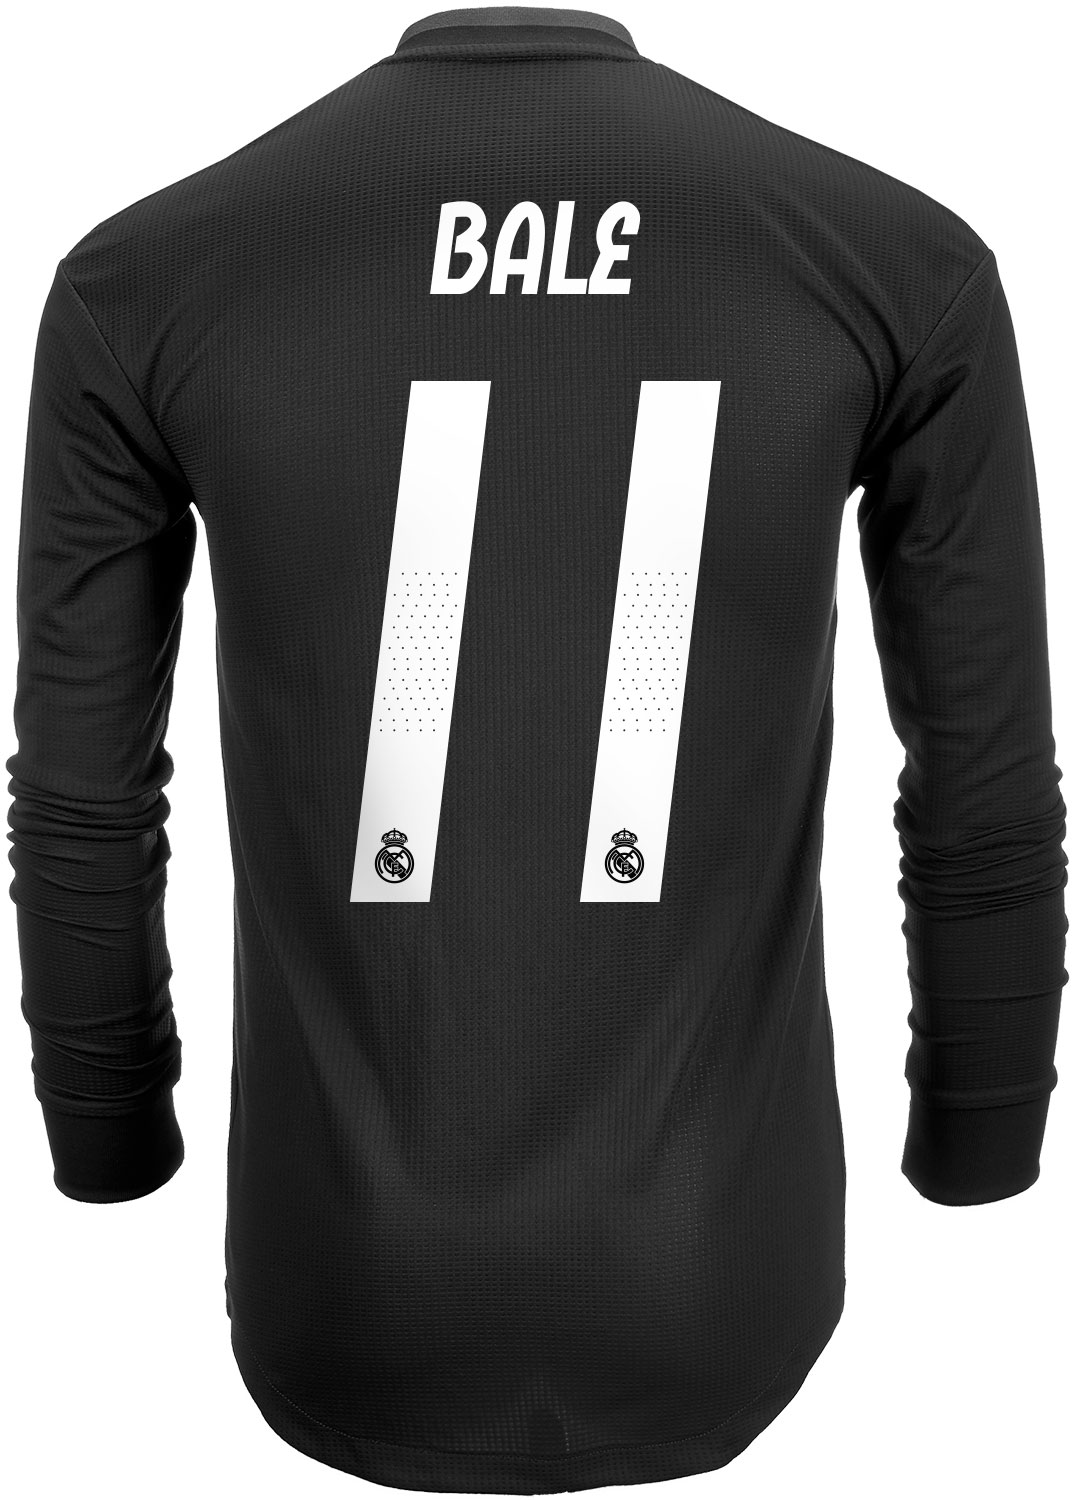 low priced 0b5a4 e3d80 2018/19 adidas Gareth Bale Real Madrid Authentic L/S Away ...